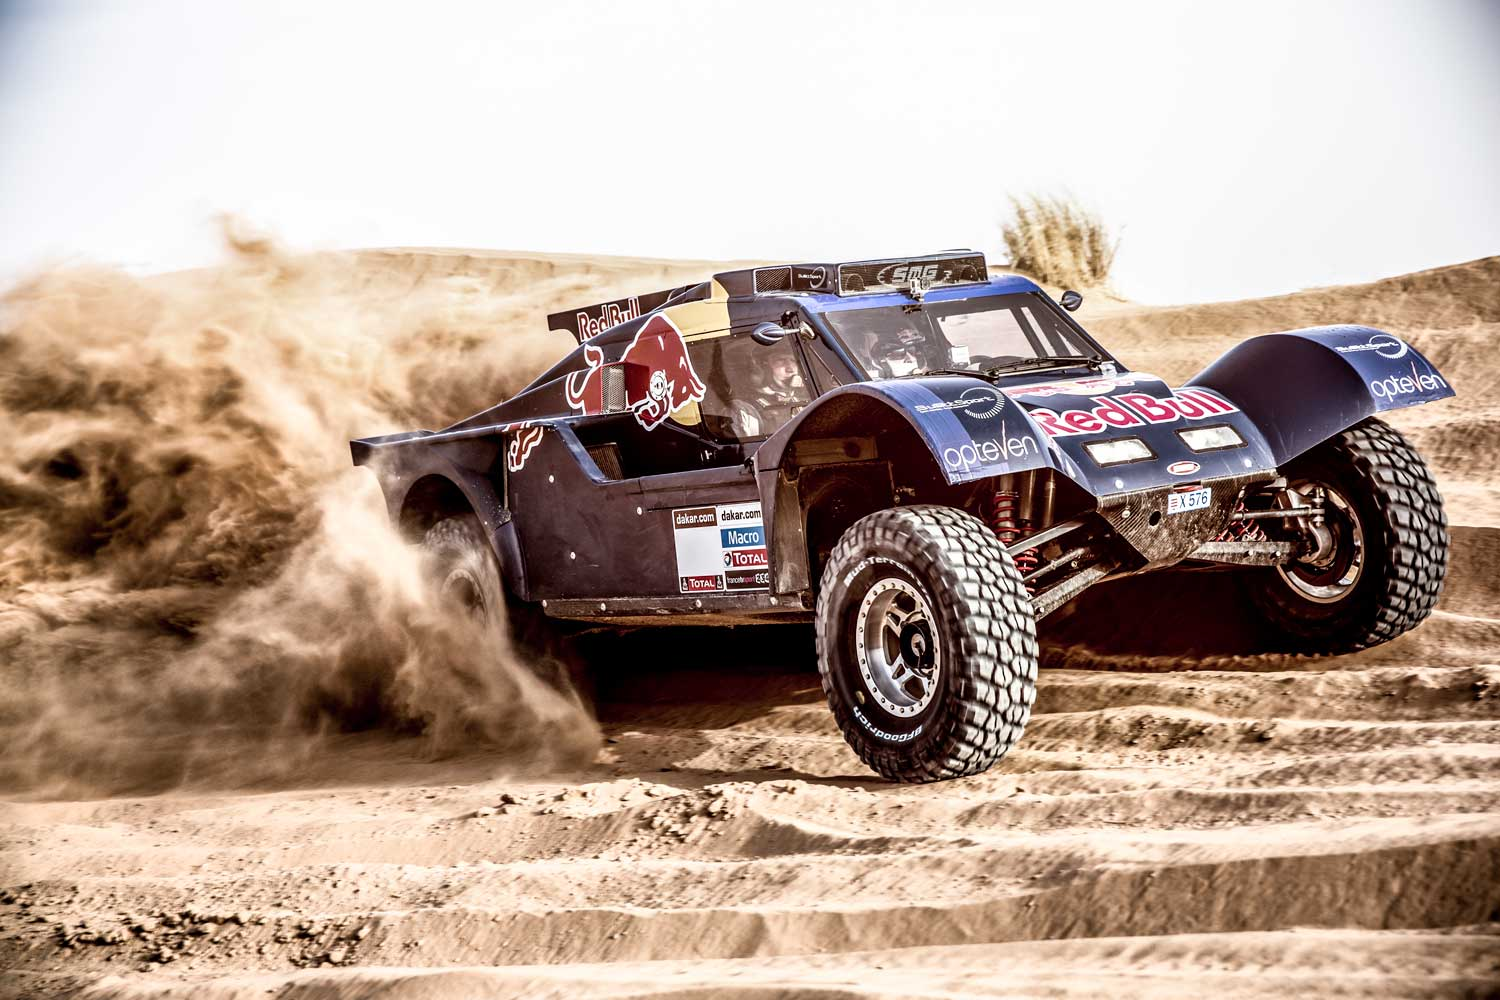 A rally car driver grinds through the desert terrain in a Subaru-powered Zero One racing buggy.